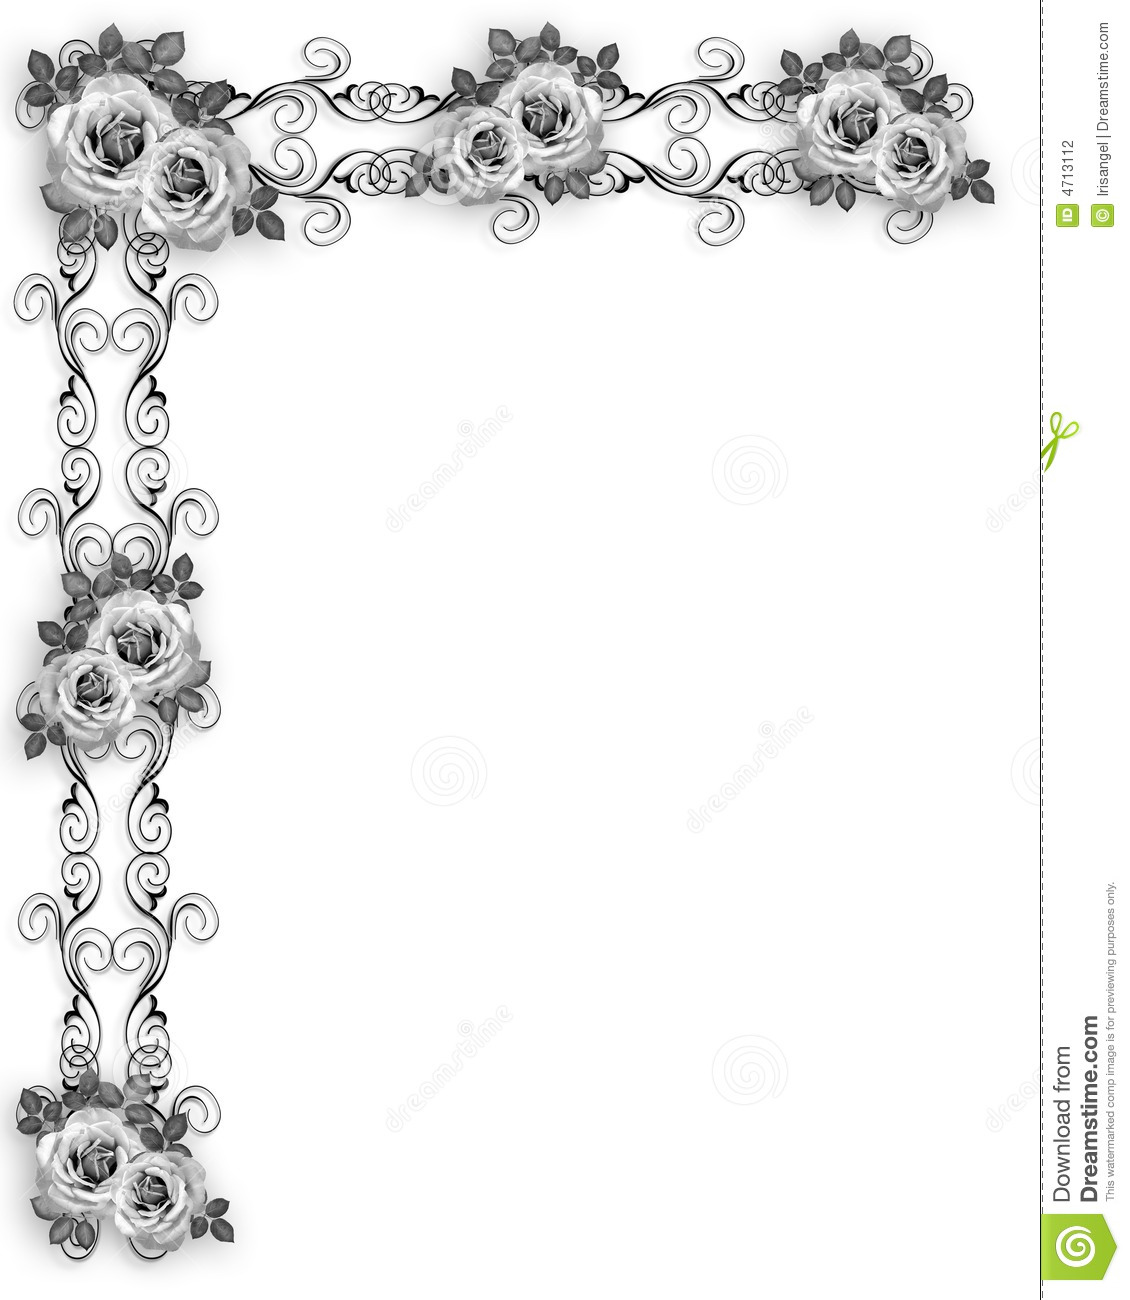 Roses Border Black And White Stock Photography